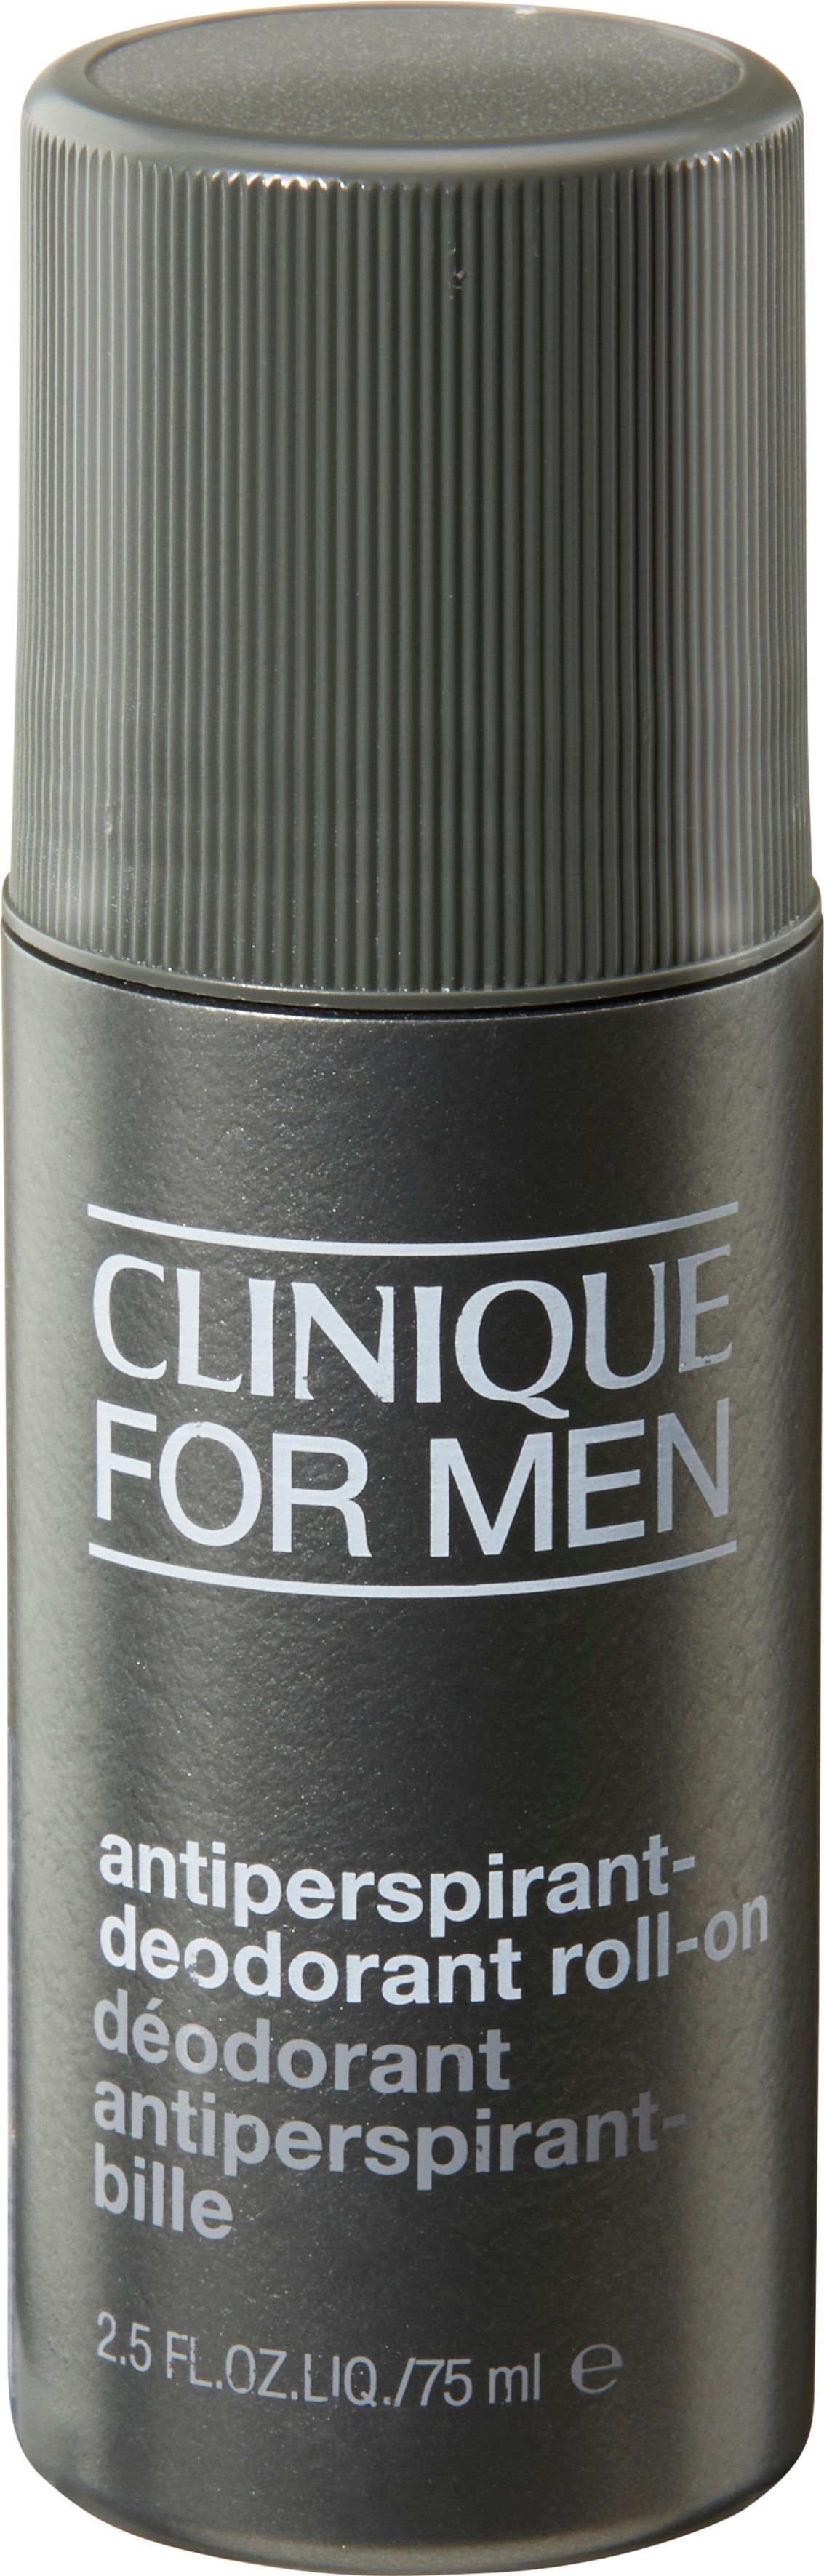 Clinique, »Antiperspirant-Deodorant Roll-On«, Deo Roller